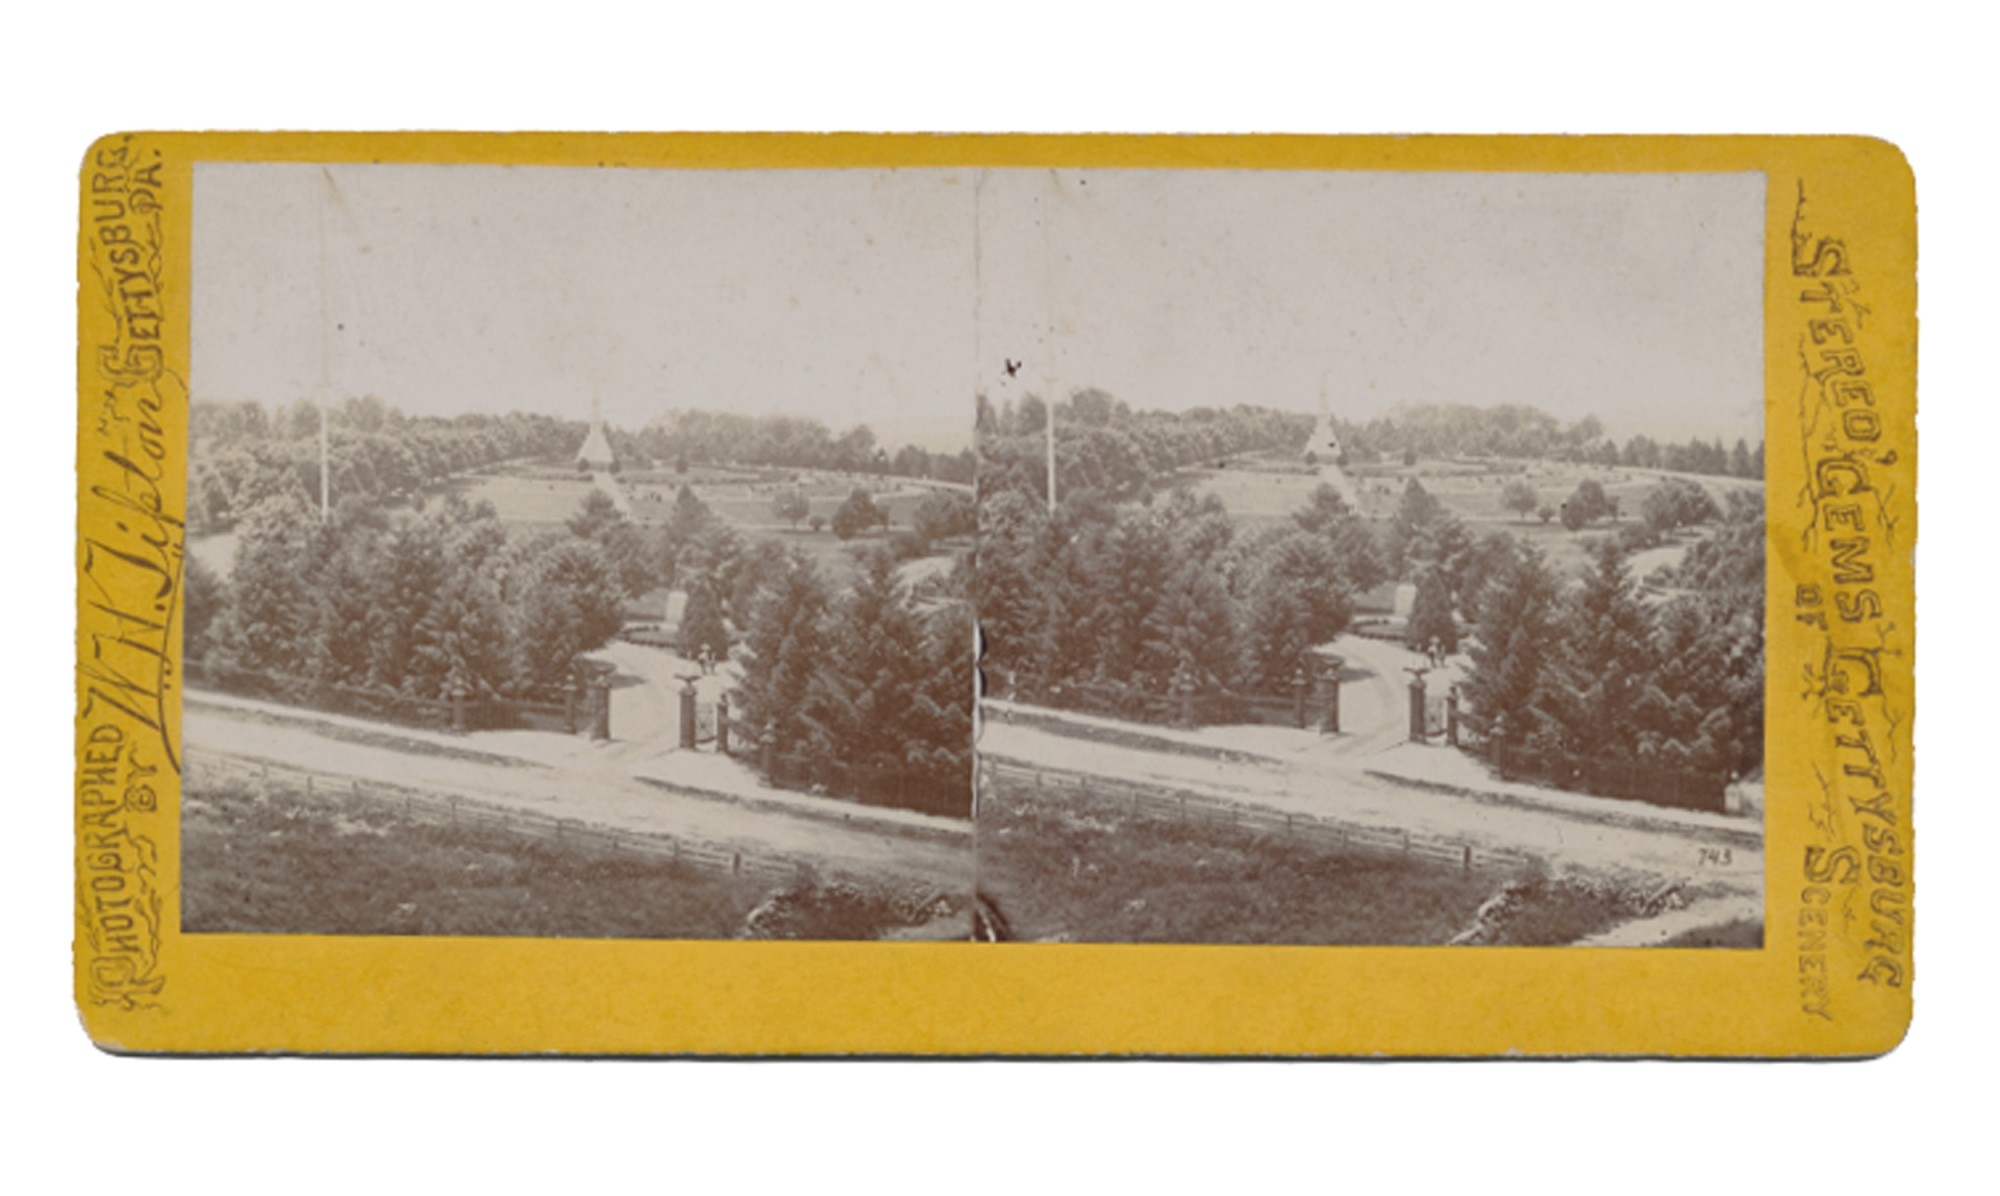 TIPTON STEREO OF SOLDIER'S NATIONAL CEMETERY, GETTYSBURG OF SOLDIER'S NATIONAL CEMETERY, GETTYSBURG